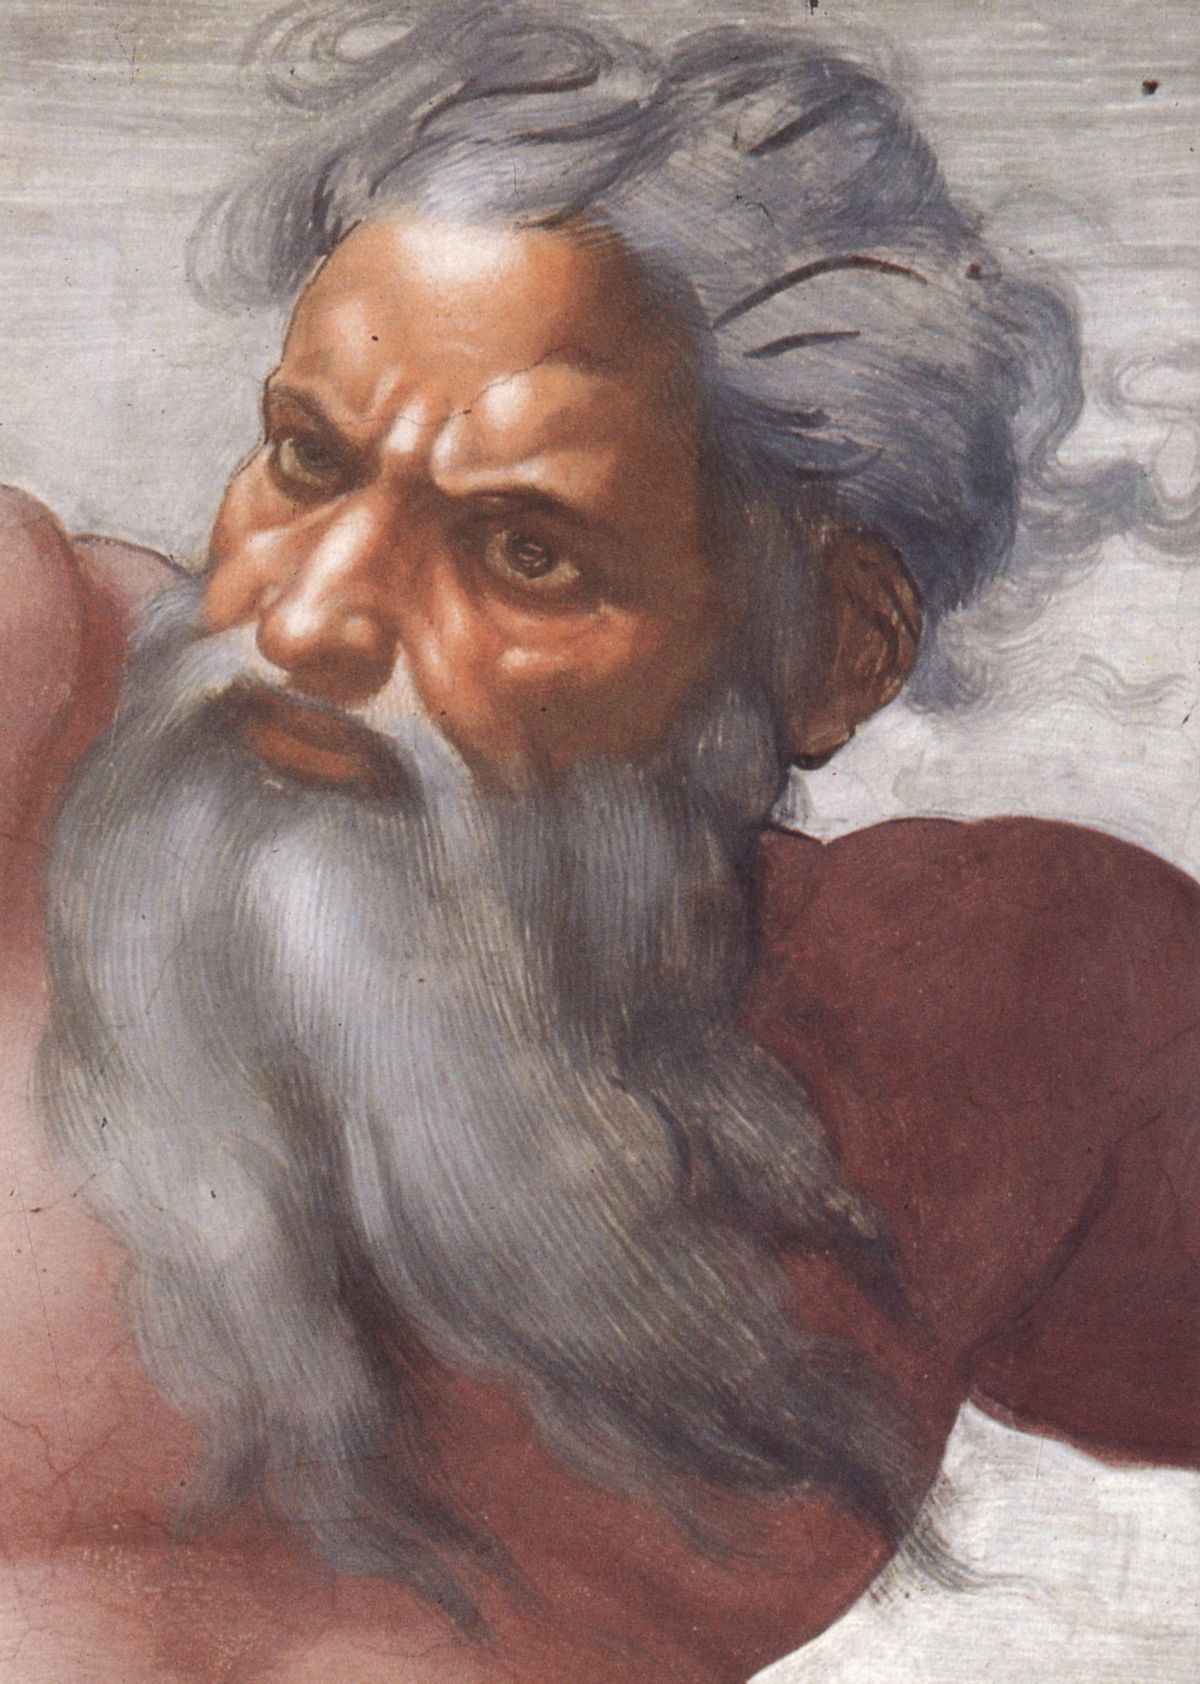 God (depicted here by Michelangelo) spreads his conservative endorsements liberally